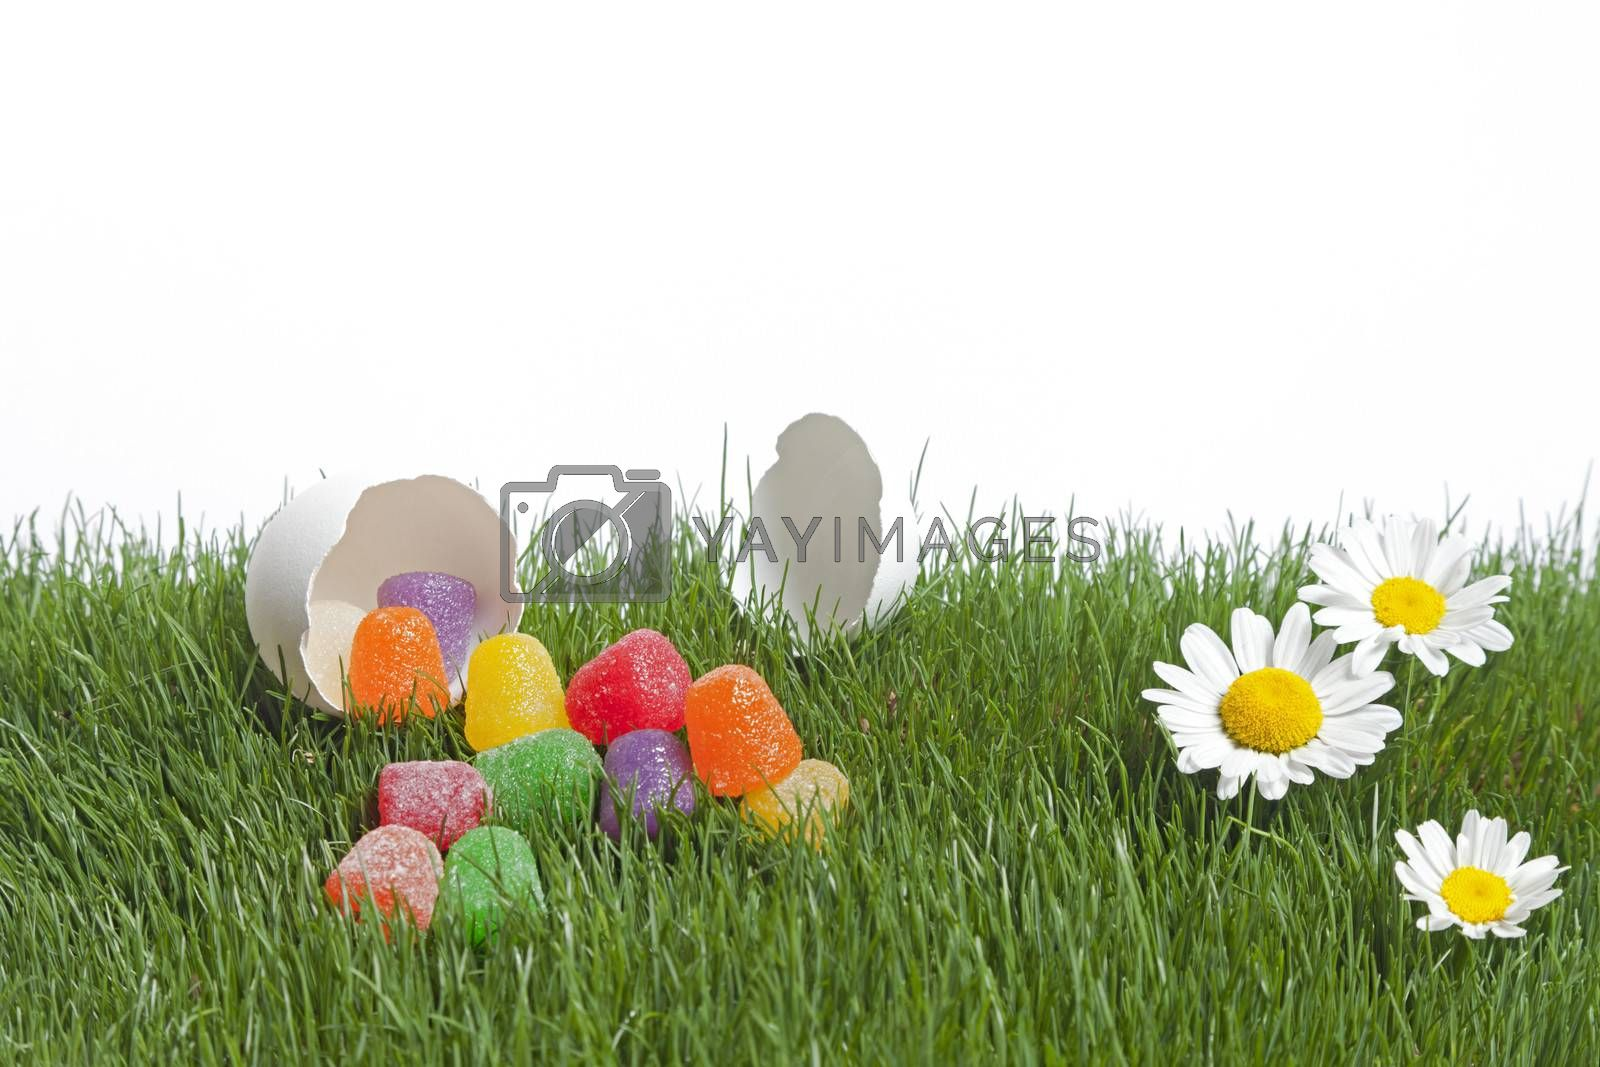 Royalty free image of Easter Surprise by mothy20